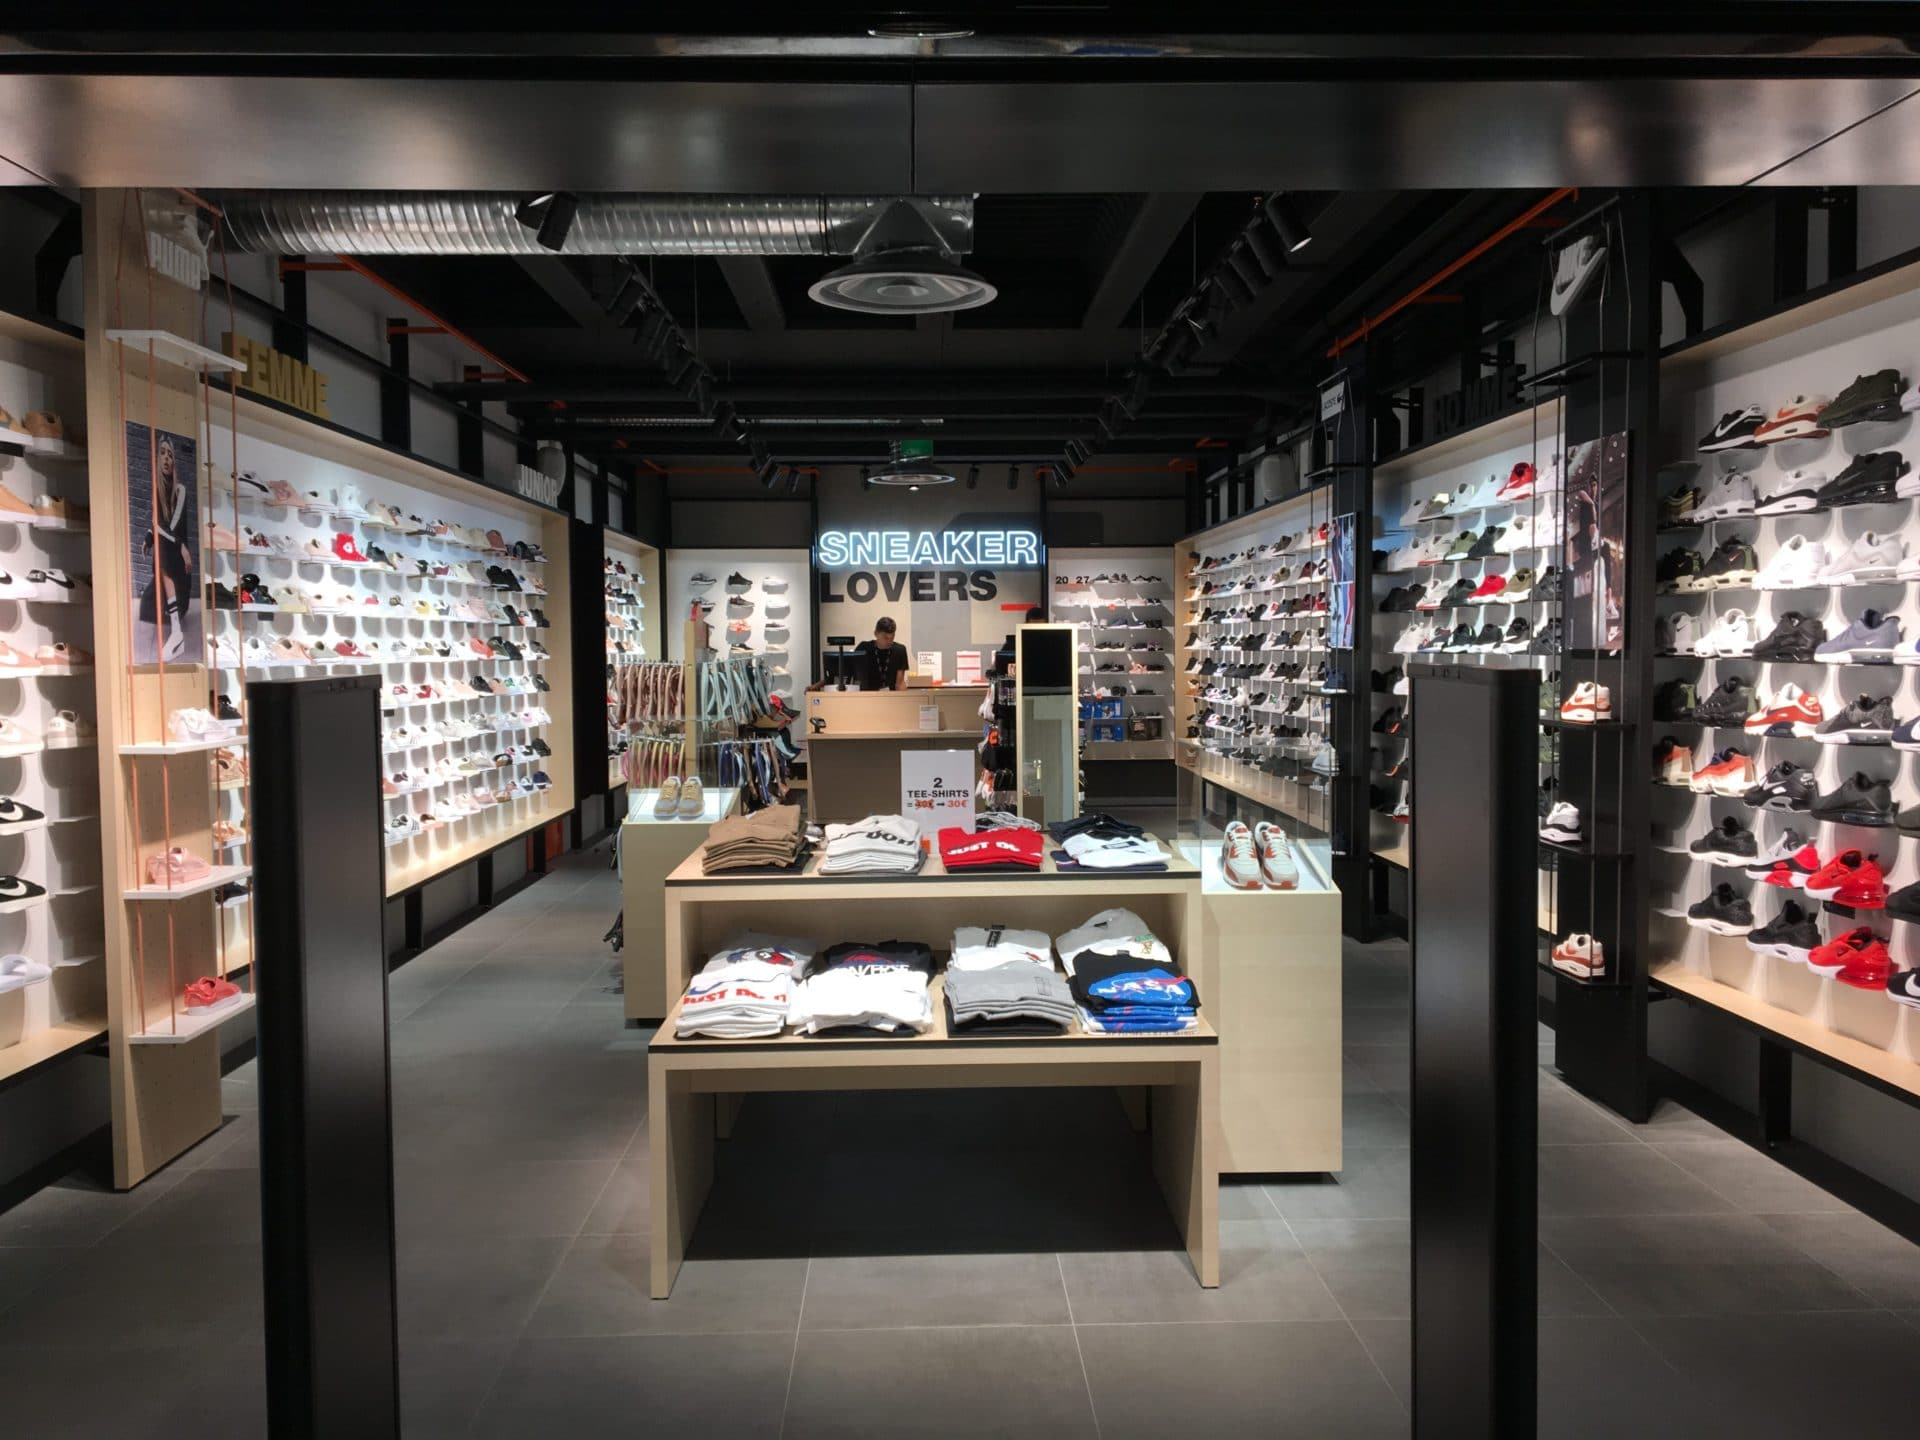 Agencement magasin de chaussures